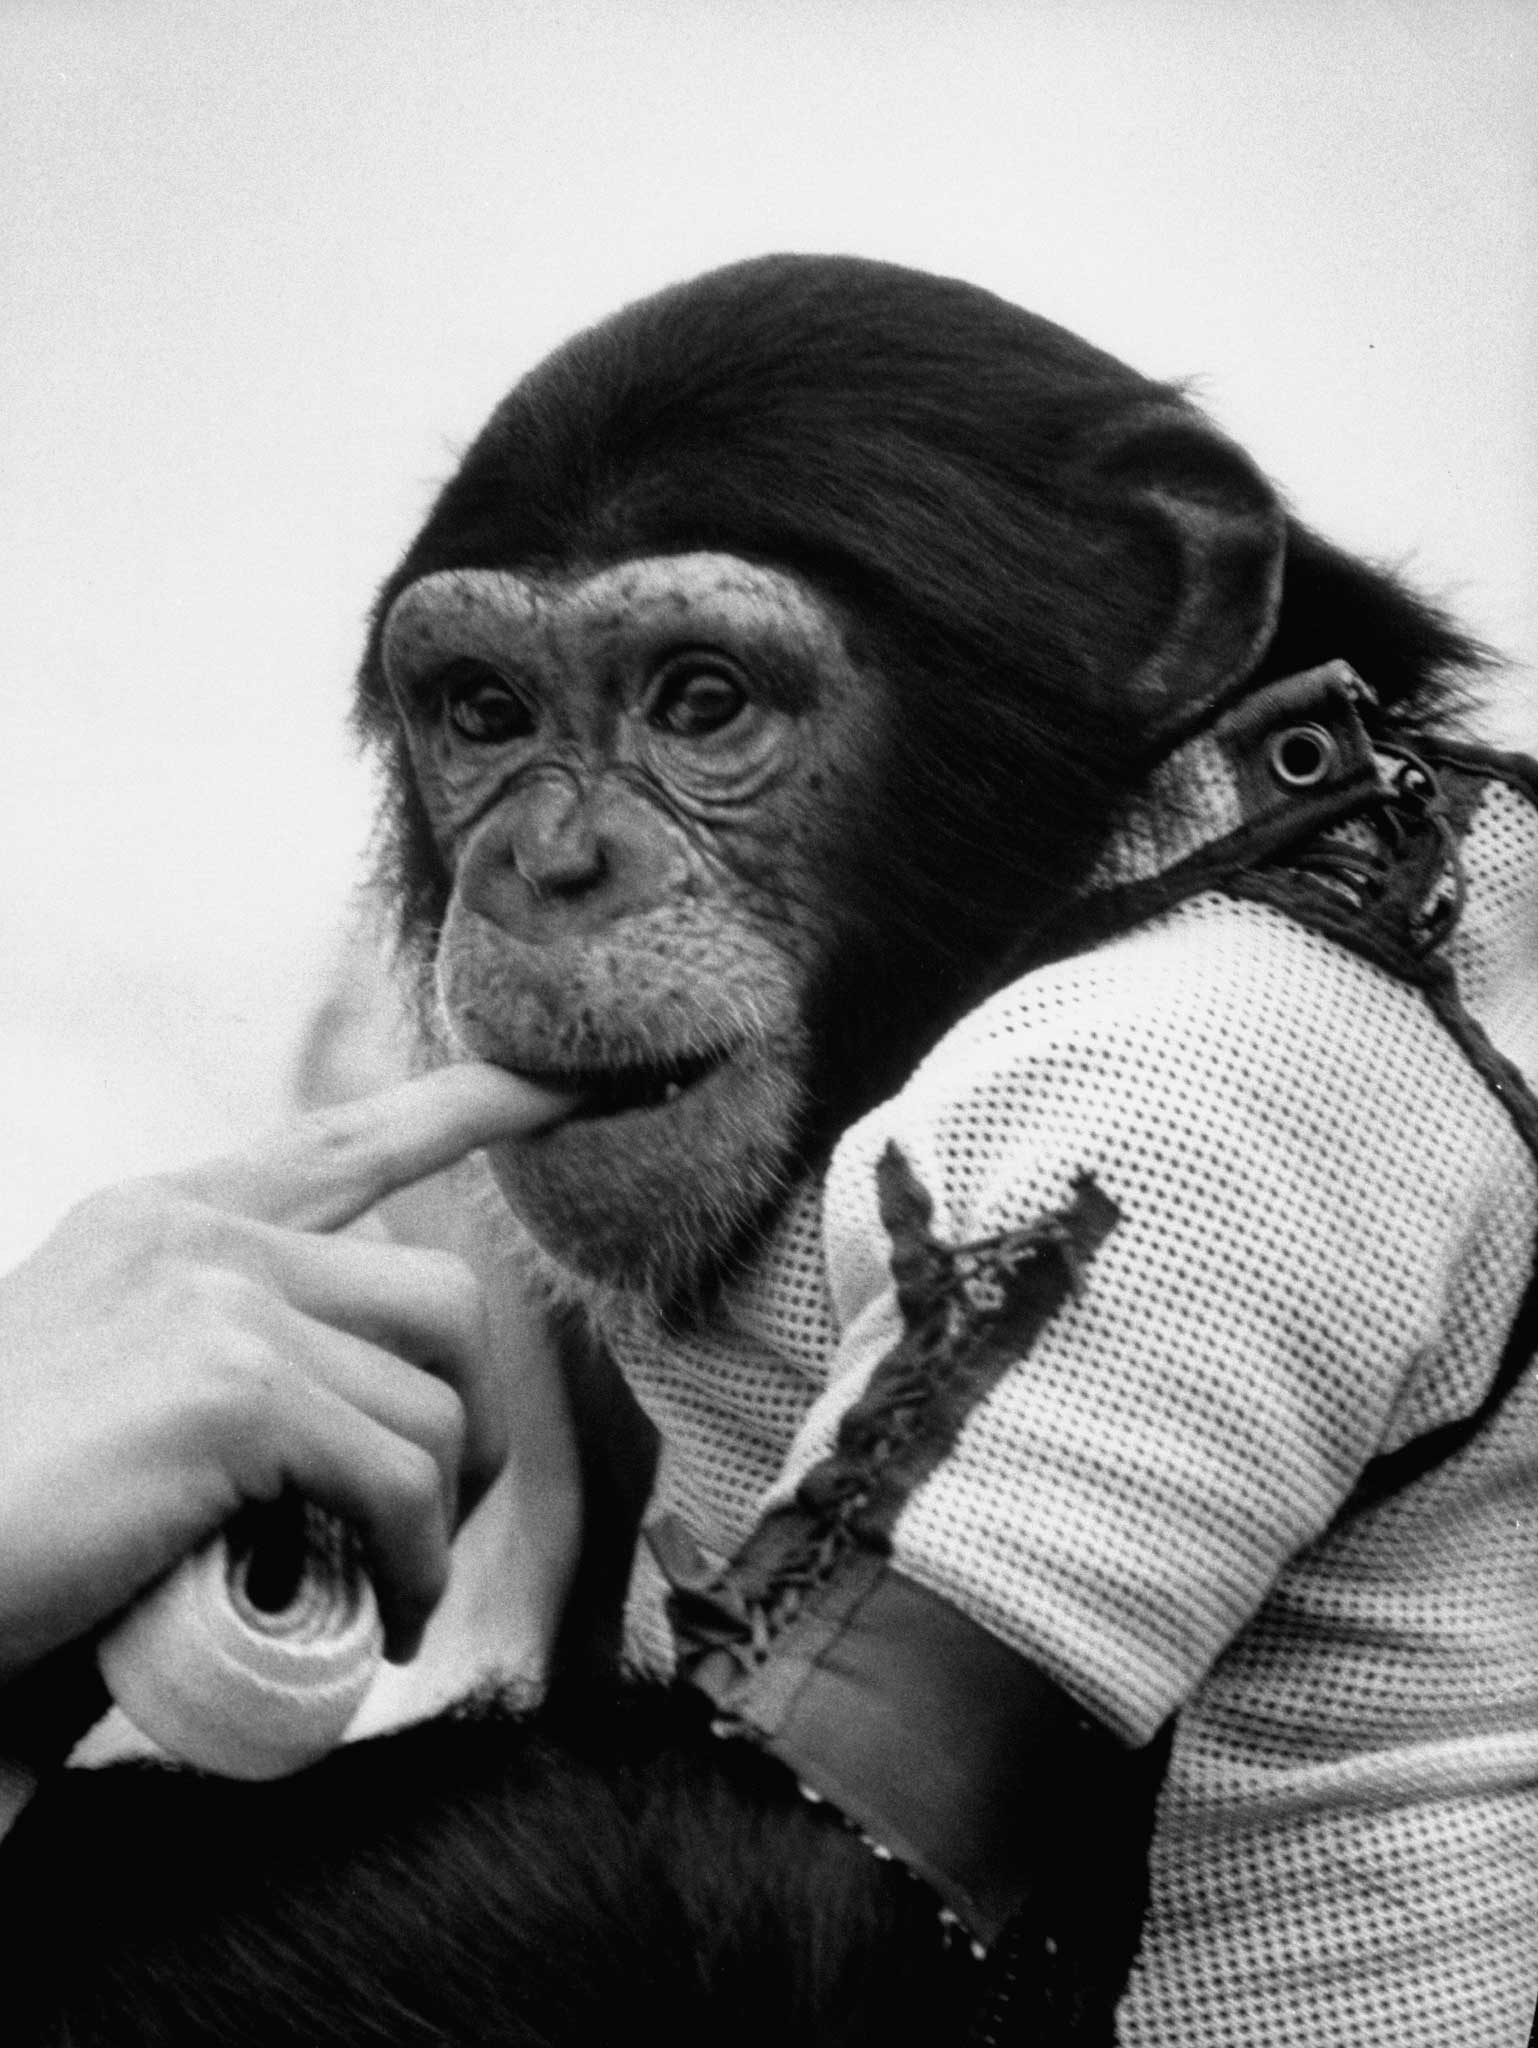 Ham the astrochimp, 1961.